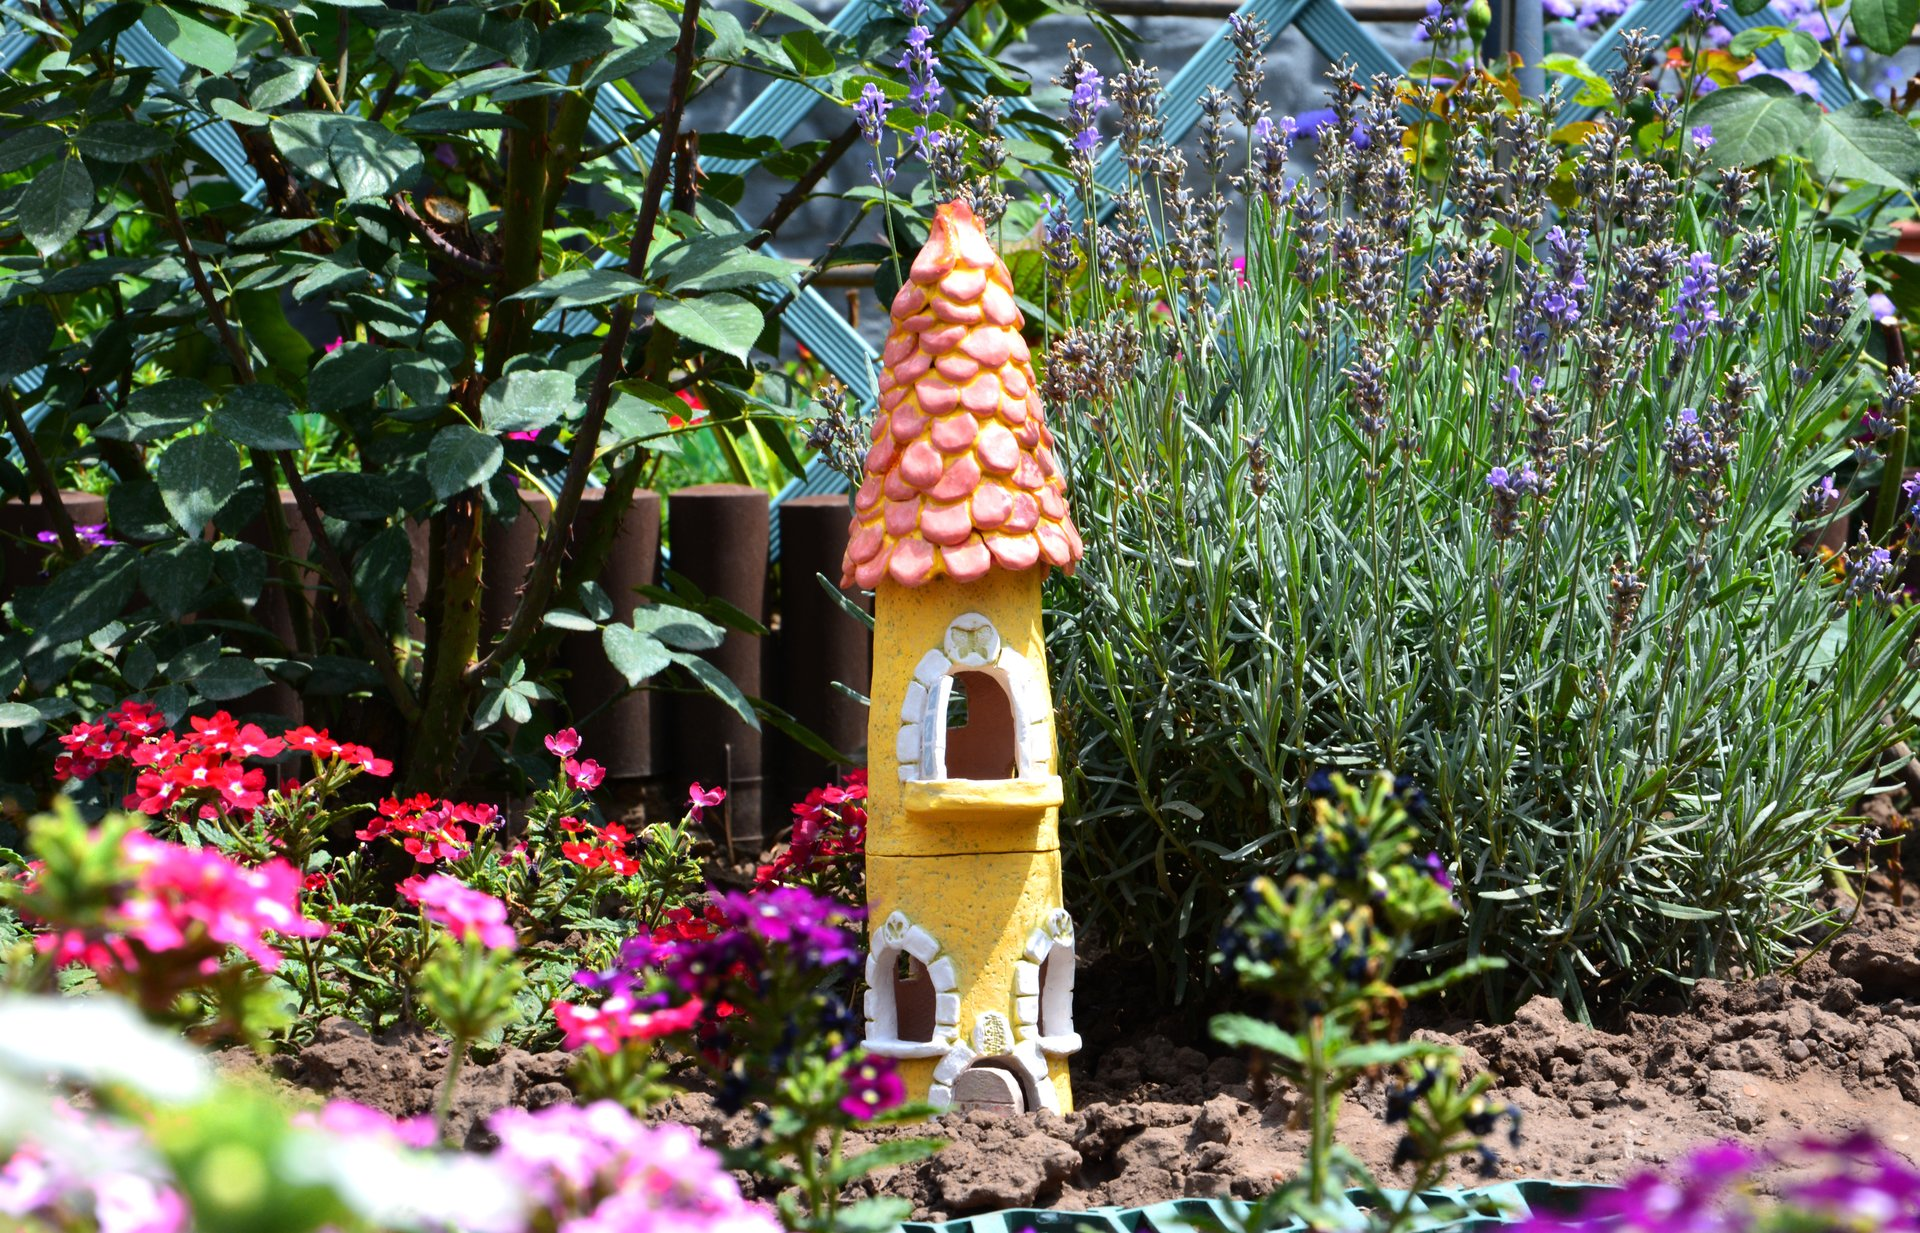 The Yellow Castle - Ceramic decorations for flowerbeds, lawns, height - 35 cm, photo 1 of 2.